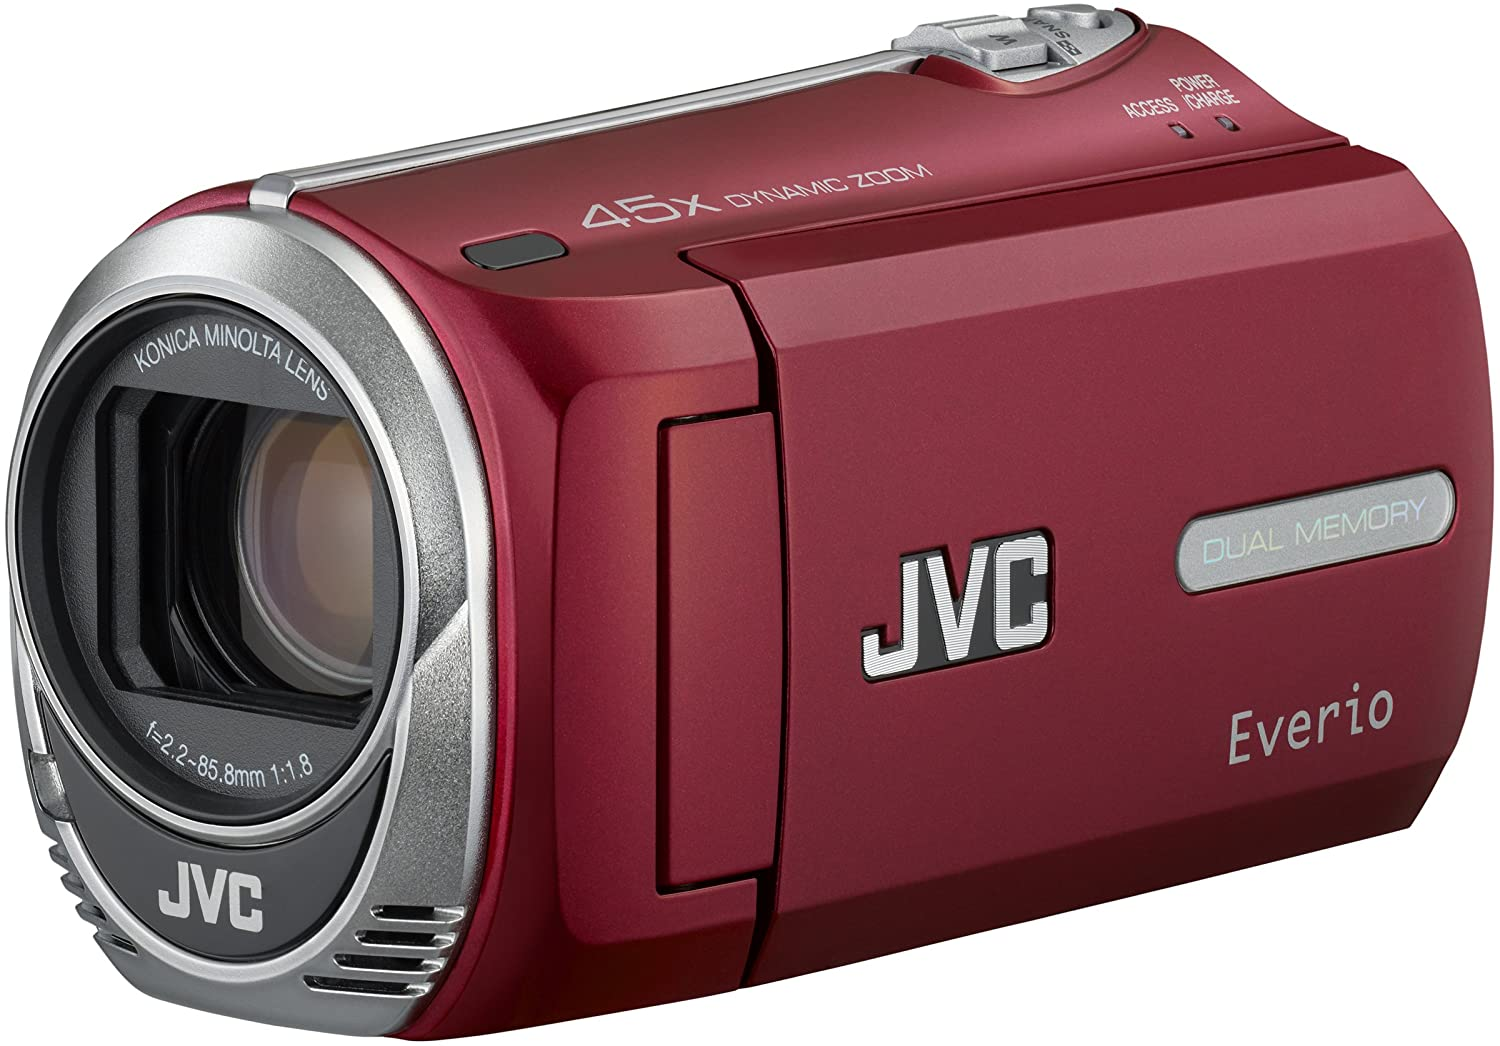 Amazon.com : JVC GZ-MS230 Camcorder (Red) (Discontinued by Manufacturer) :  Camera & Photo